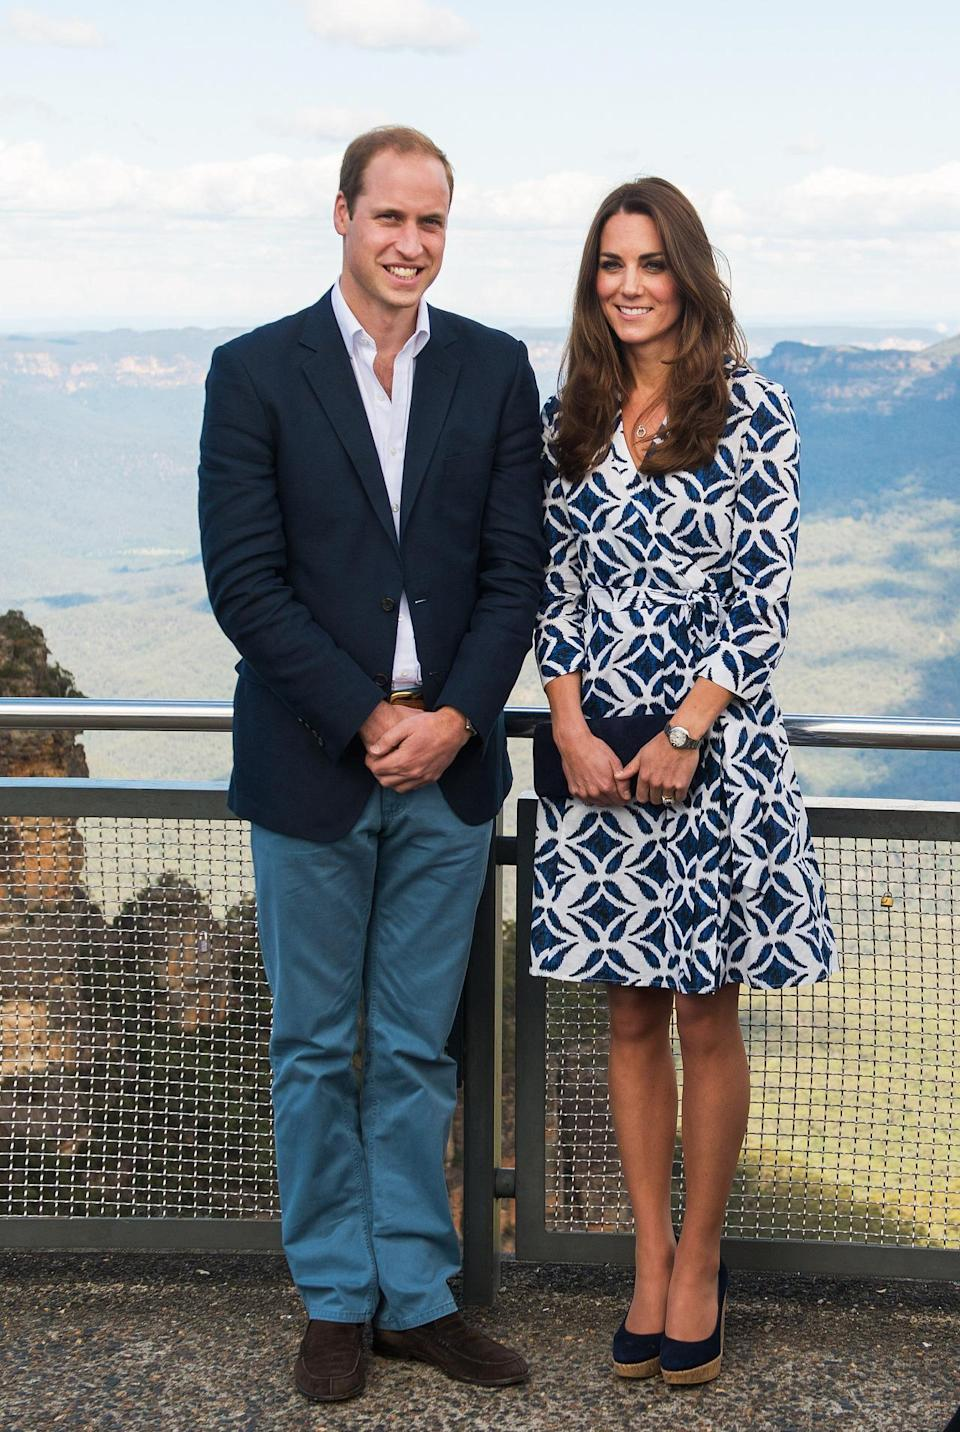 <p>Kate and William visited Australia's Blue Mountains with the Duchess donning a printed dress from Diane von Furstenberg. Navy wedges by Corkswoon and a Stuart Weitzman bag finished the look.</p><p><i>[Photo: PA]</i></p>